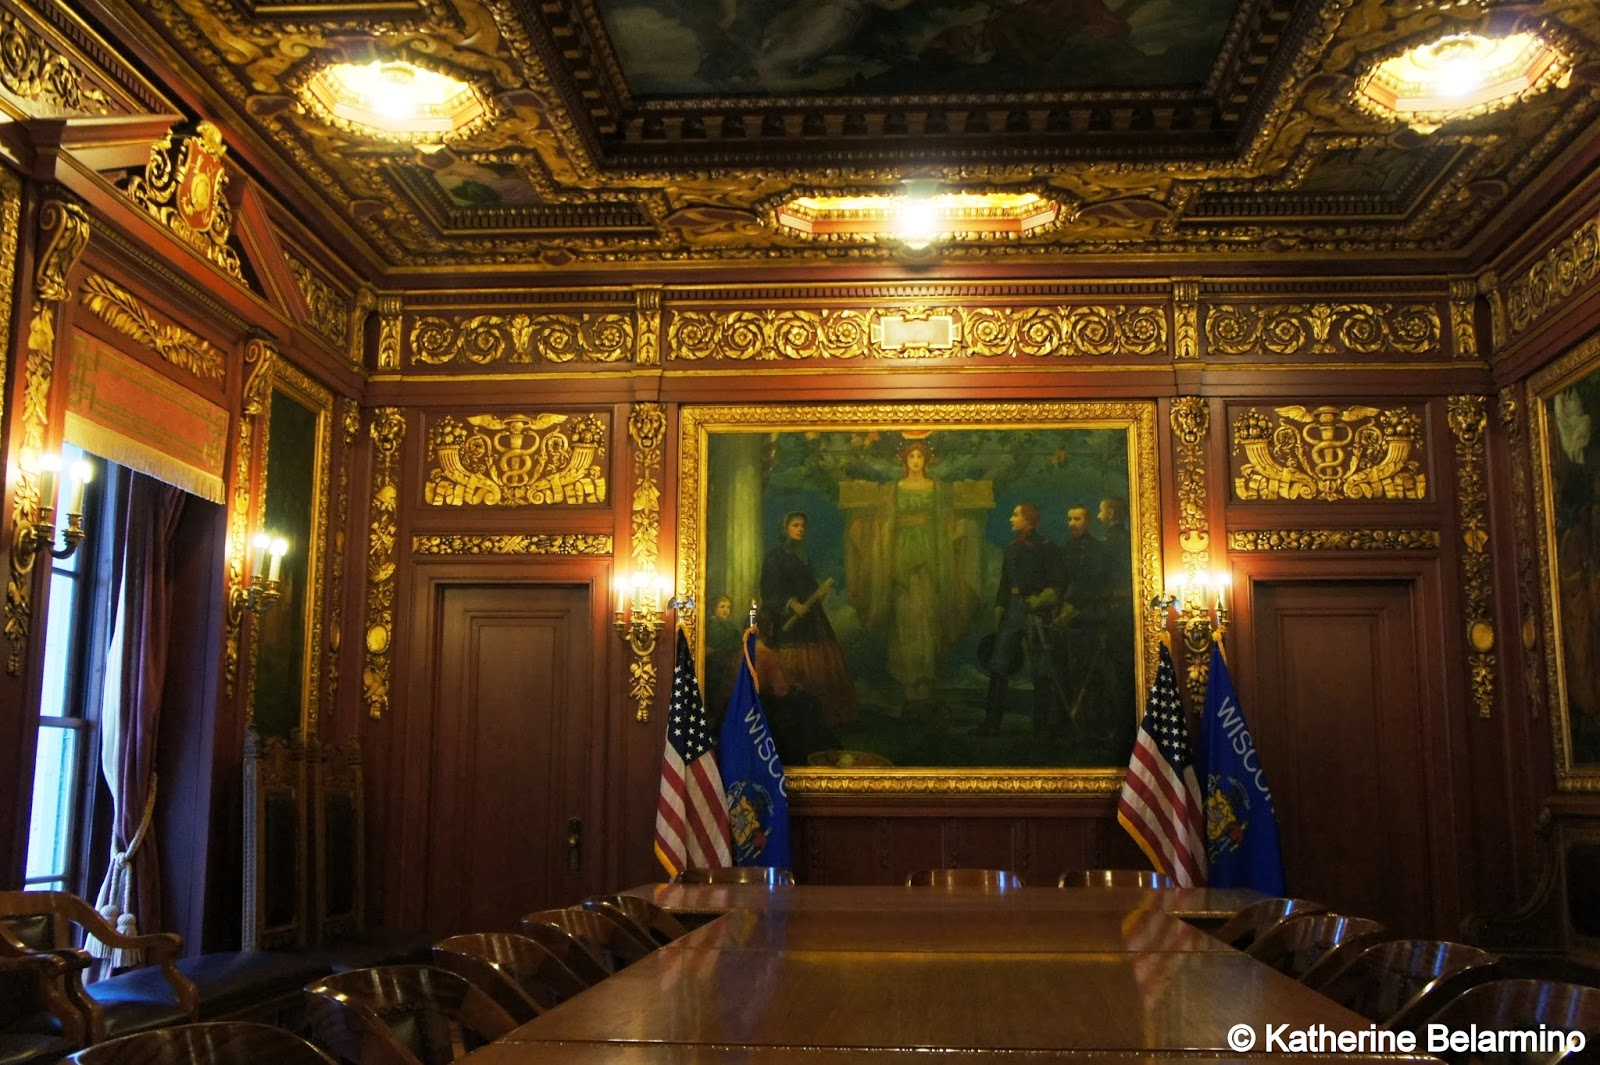 Governor's Conference Room Madison Capitol Building Wisconsin